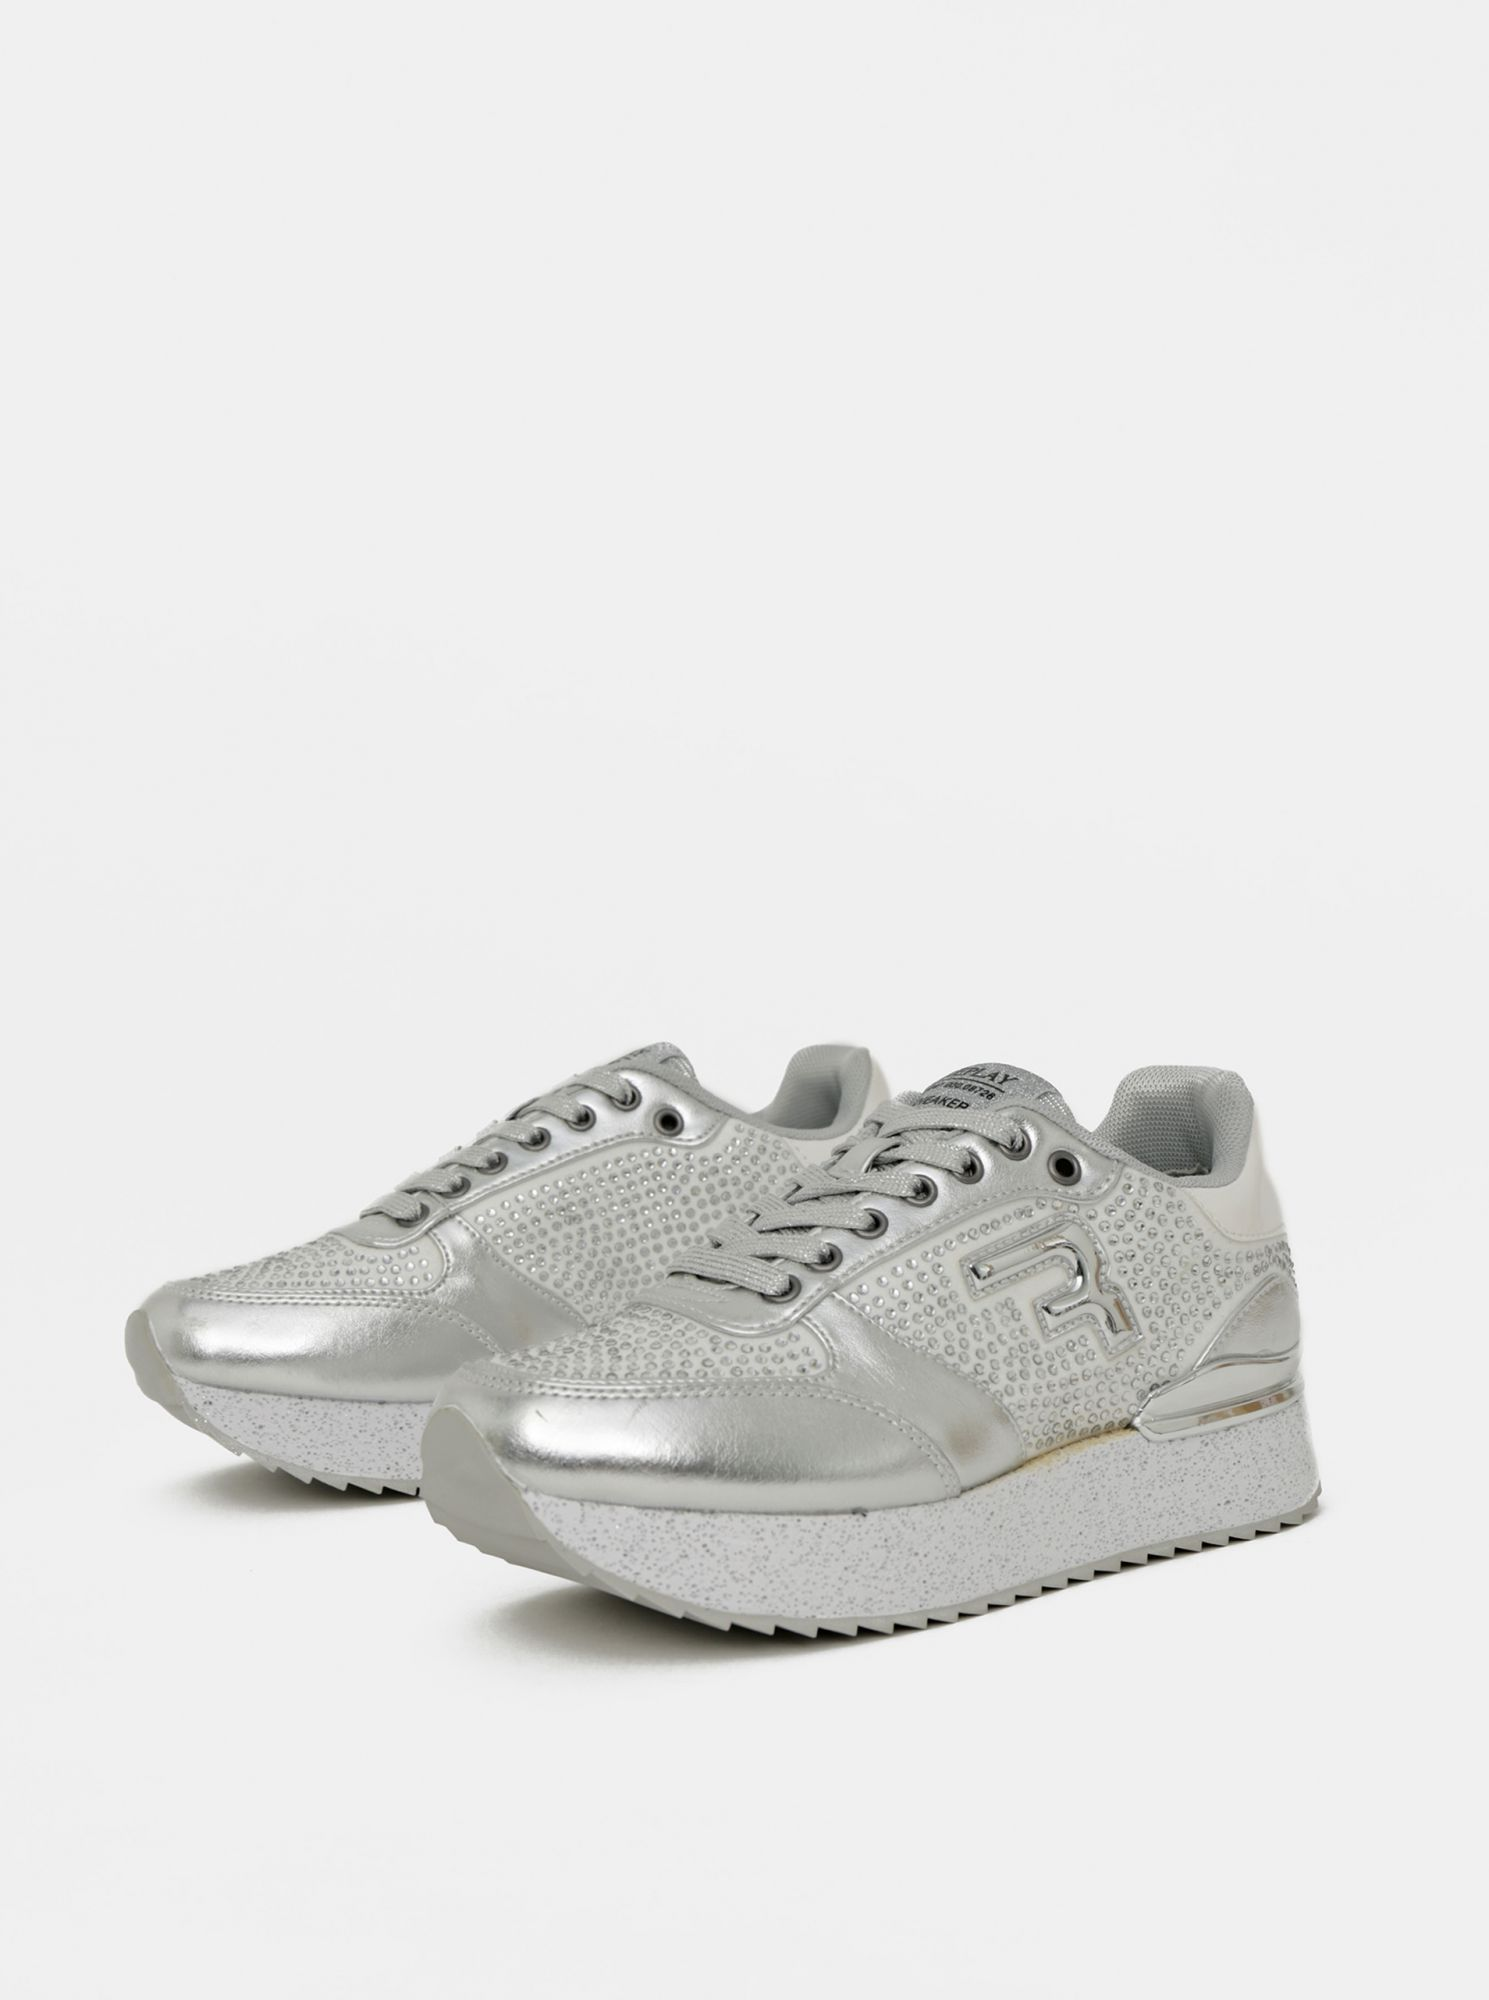 Sneakers da donna in Replay argento